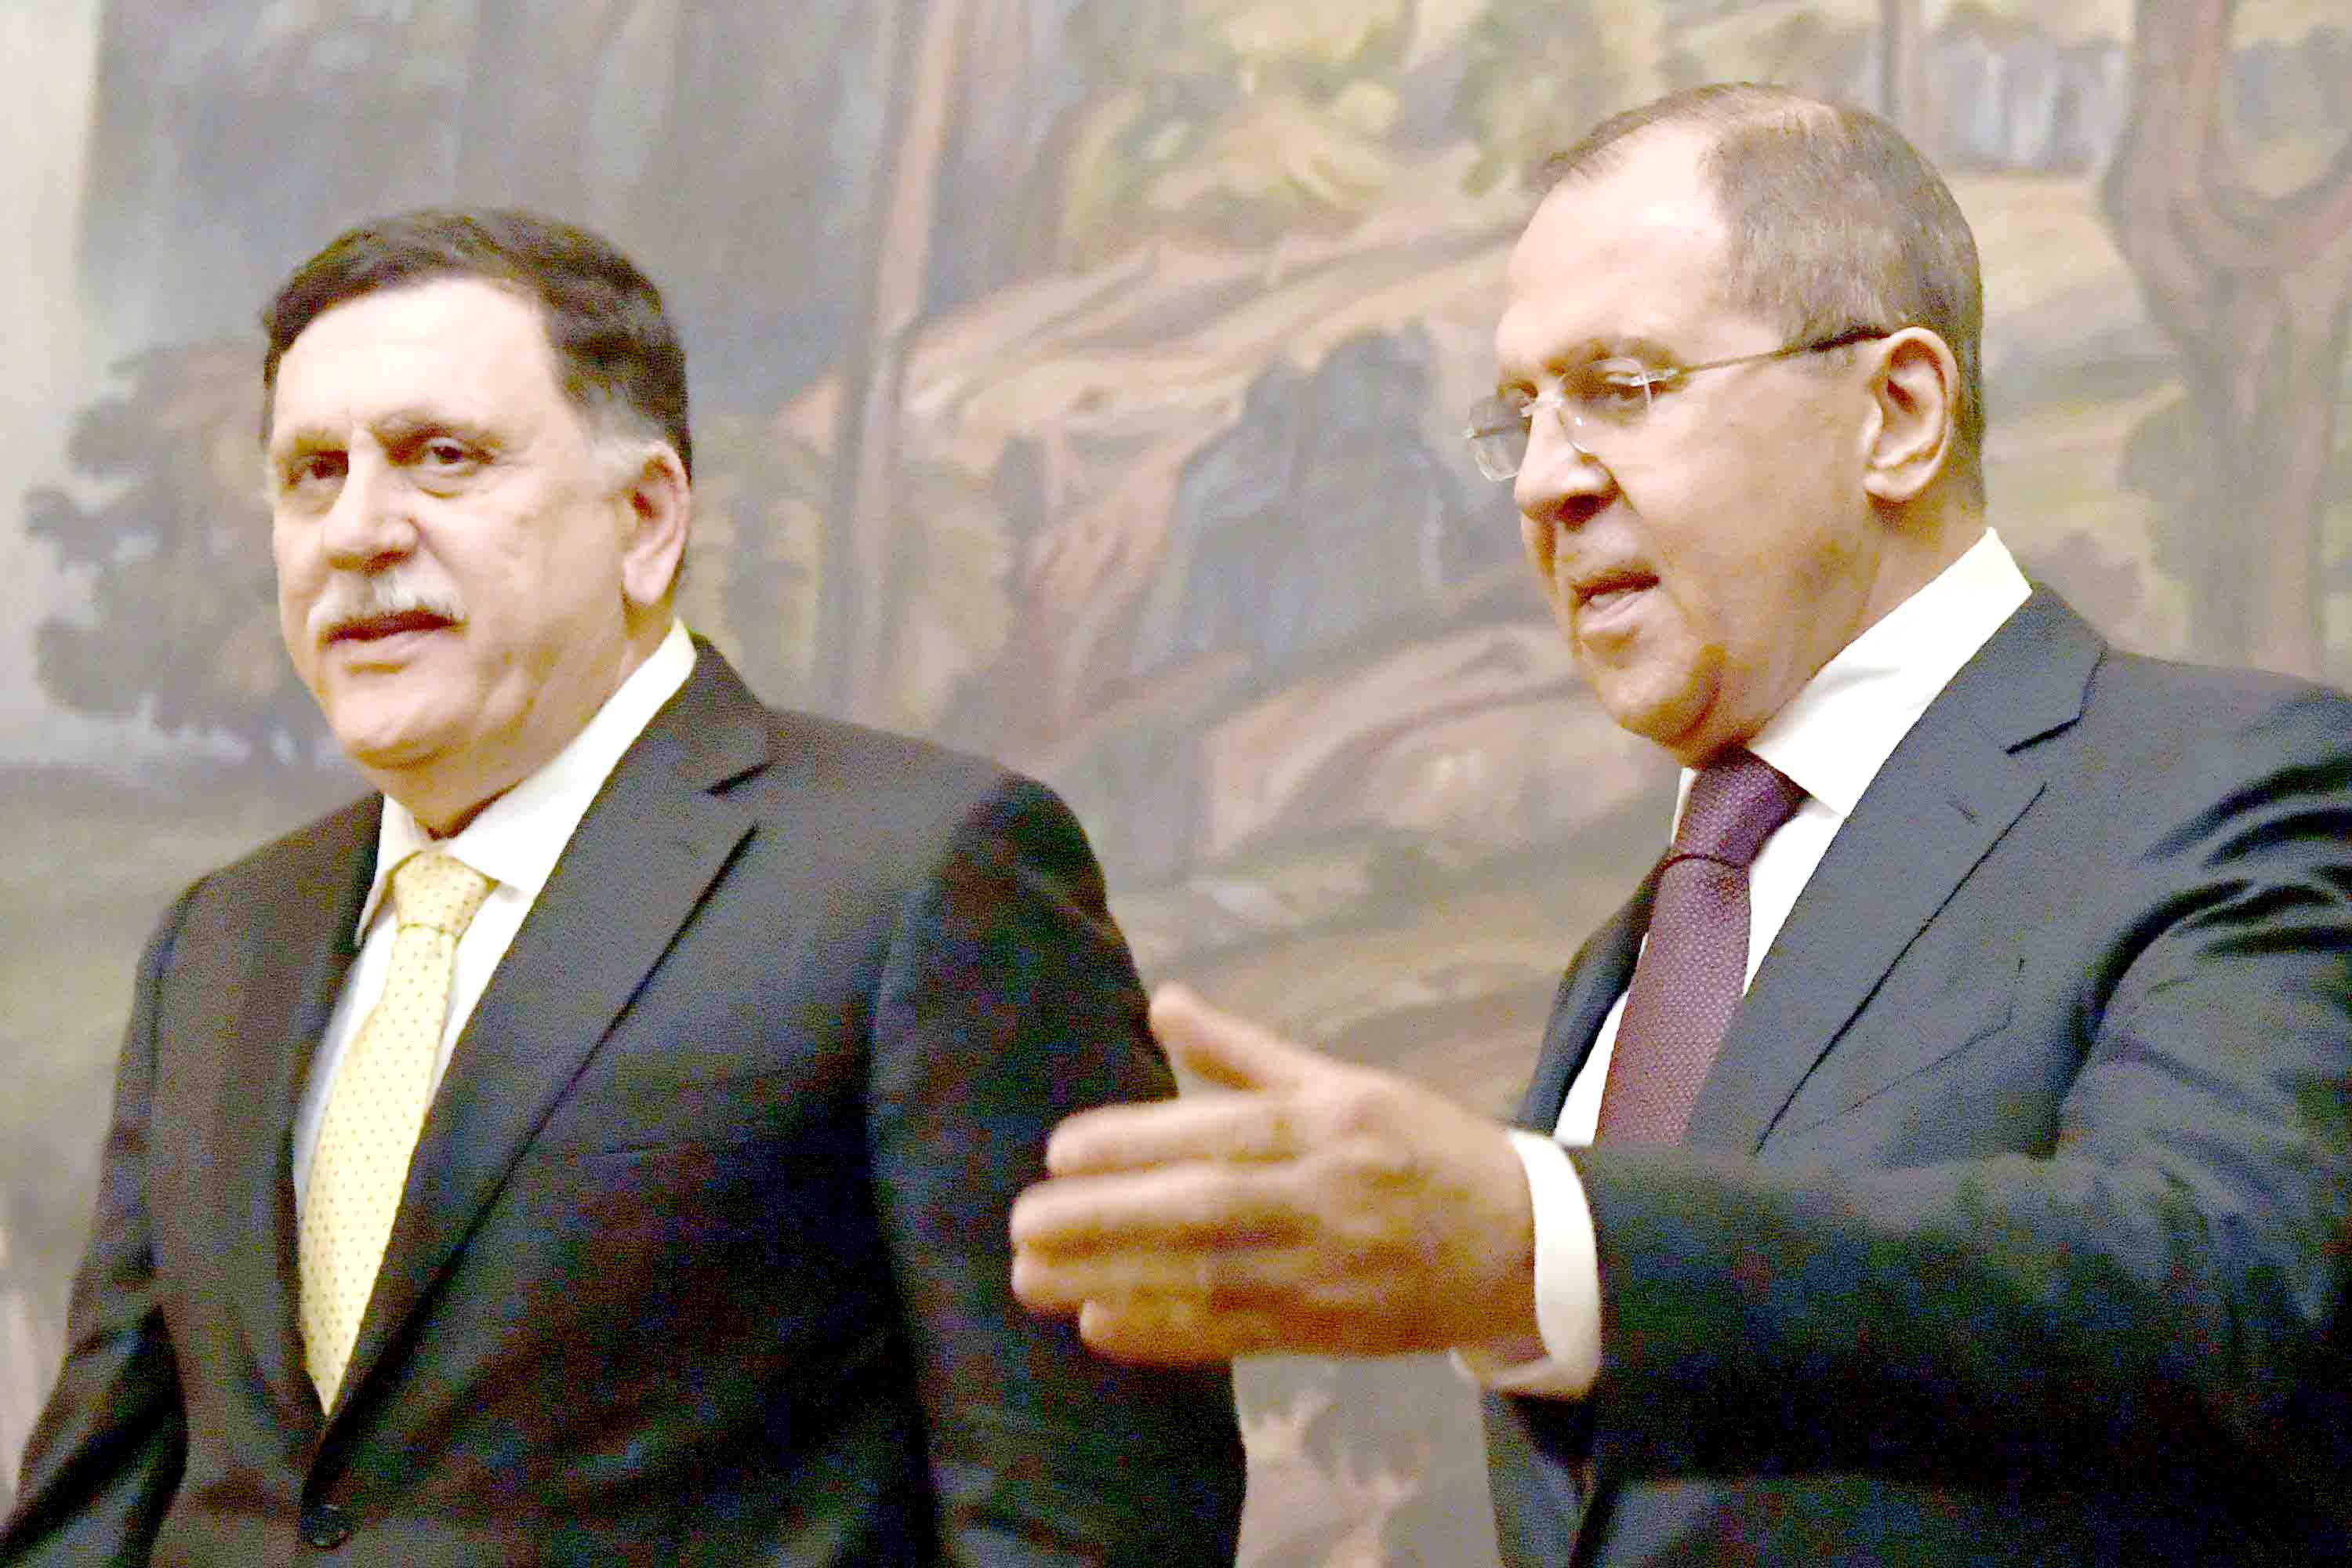 A balance between all actors. A 2017 file picture shows Russian Foreign Minister Sergei Lavrov (R) and head of the Tripoli-based Presidential Council Fayez al-Sarraj during a meeting in Moscow. (AFP)